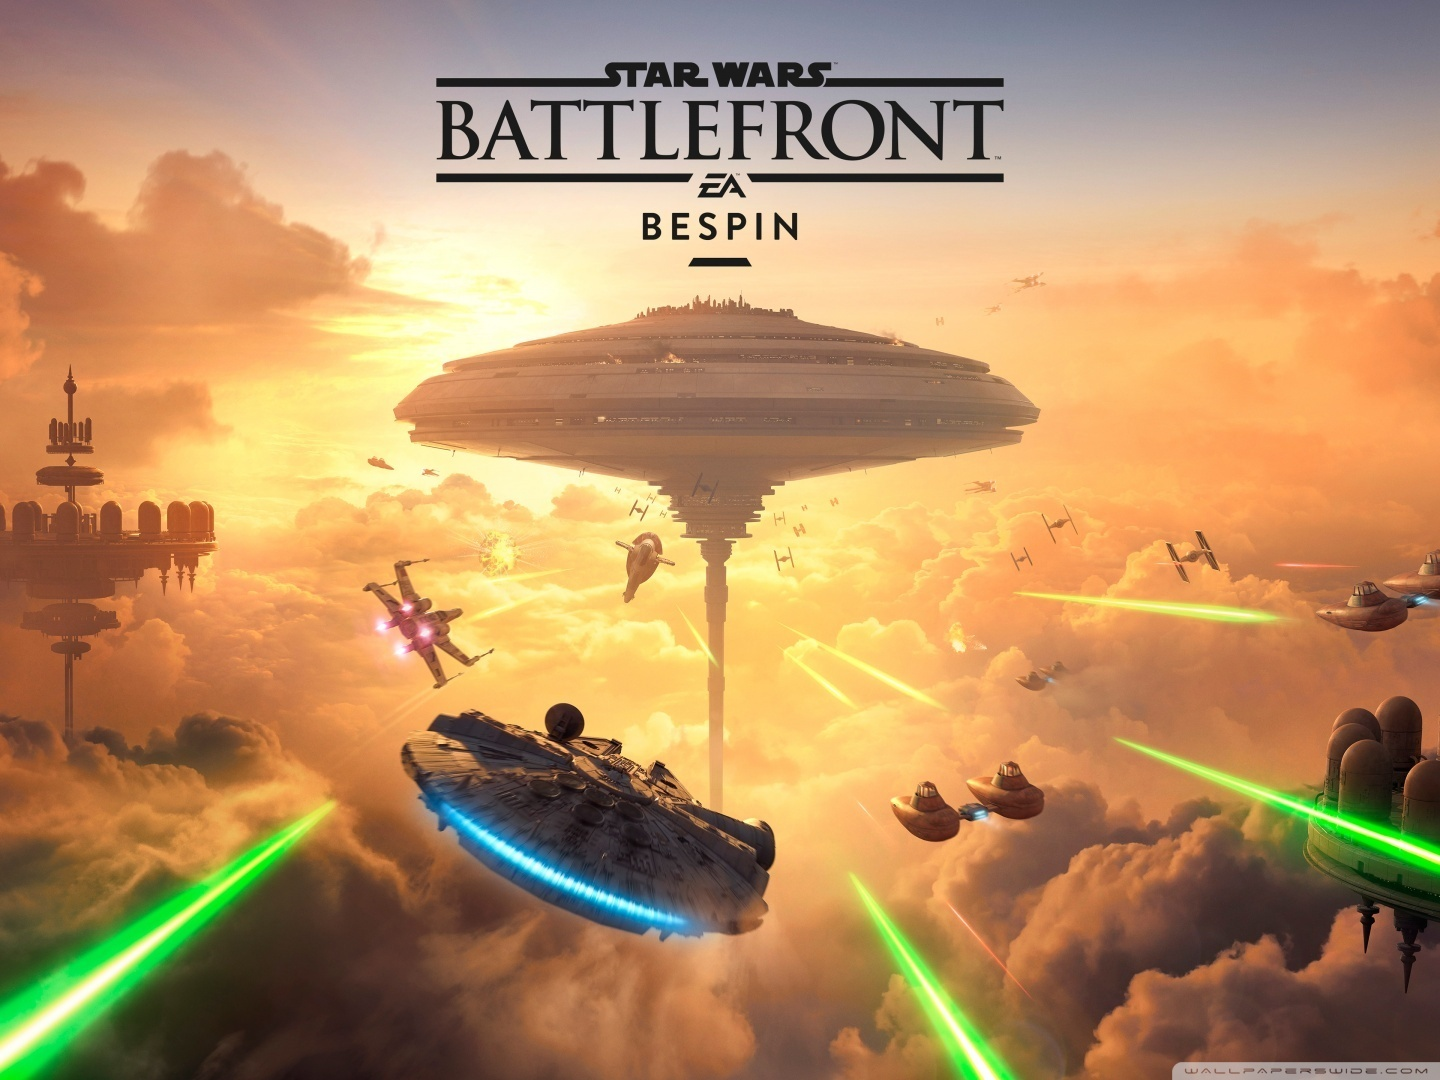 Star Wars Battlefront Bespin DLC 4K HD Desktop Wallpaper for 4K 1440x1080